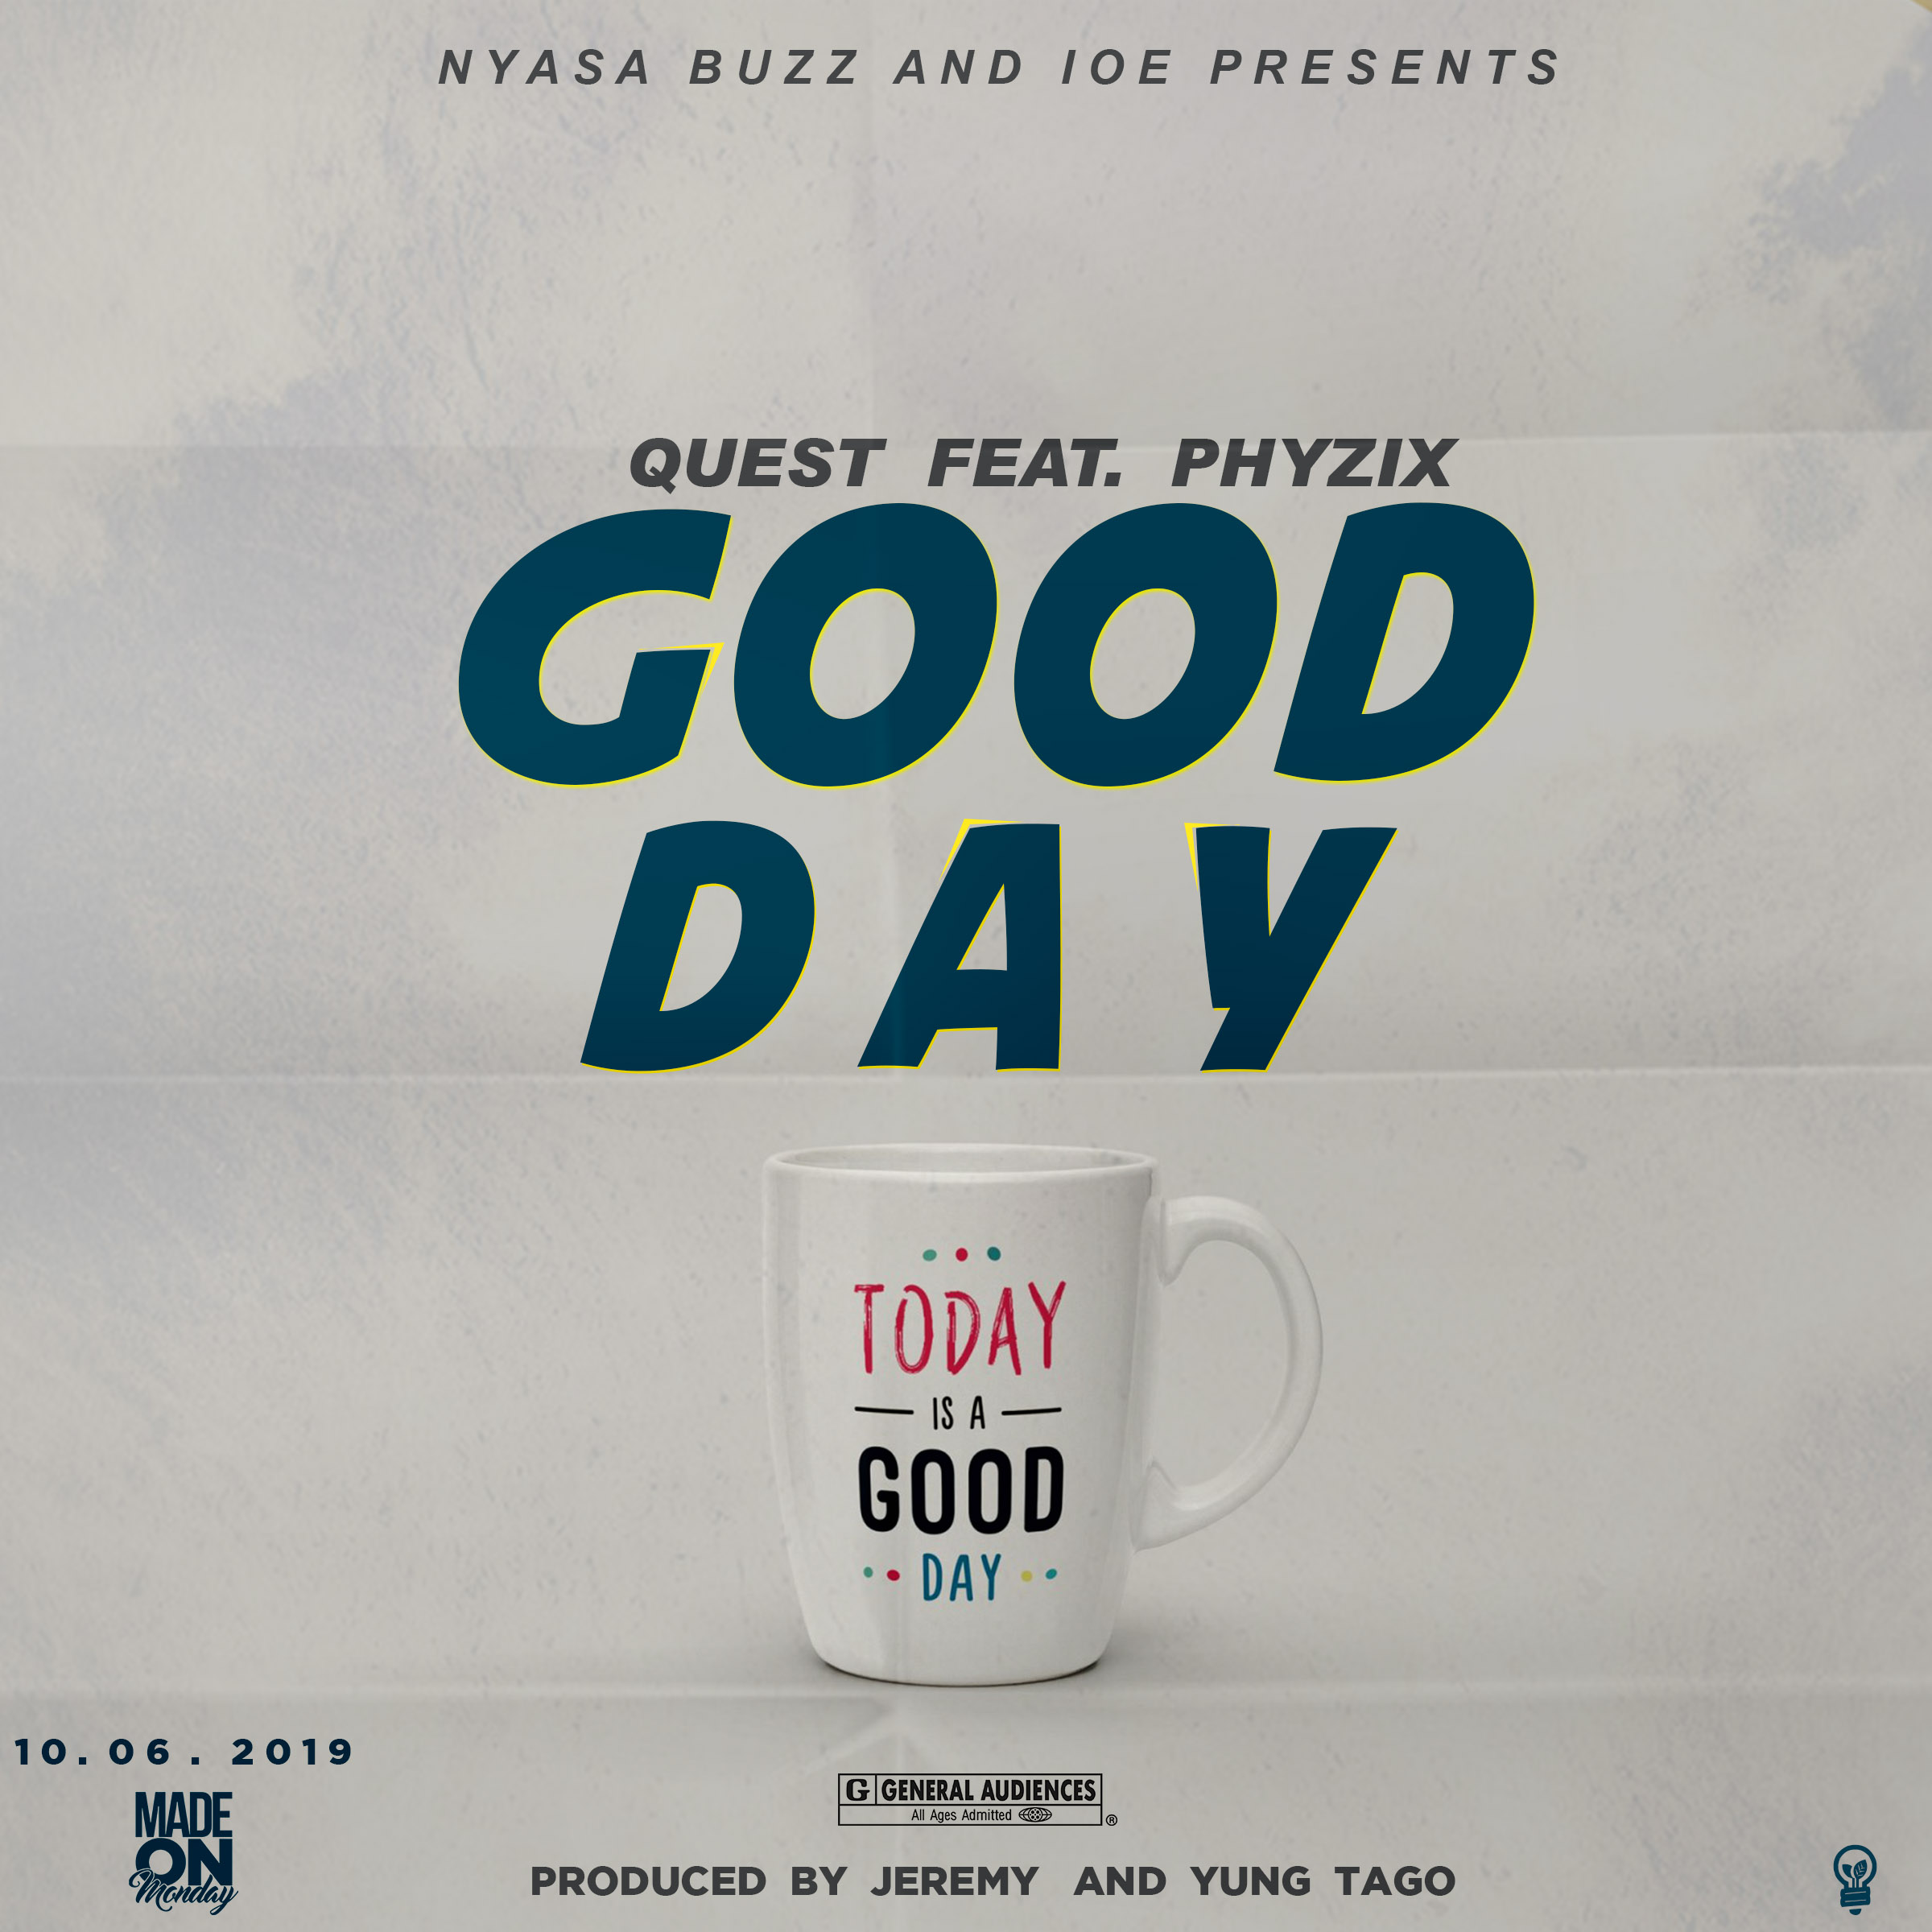 Good Day - Quest